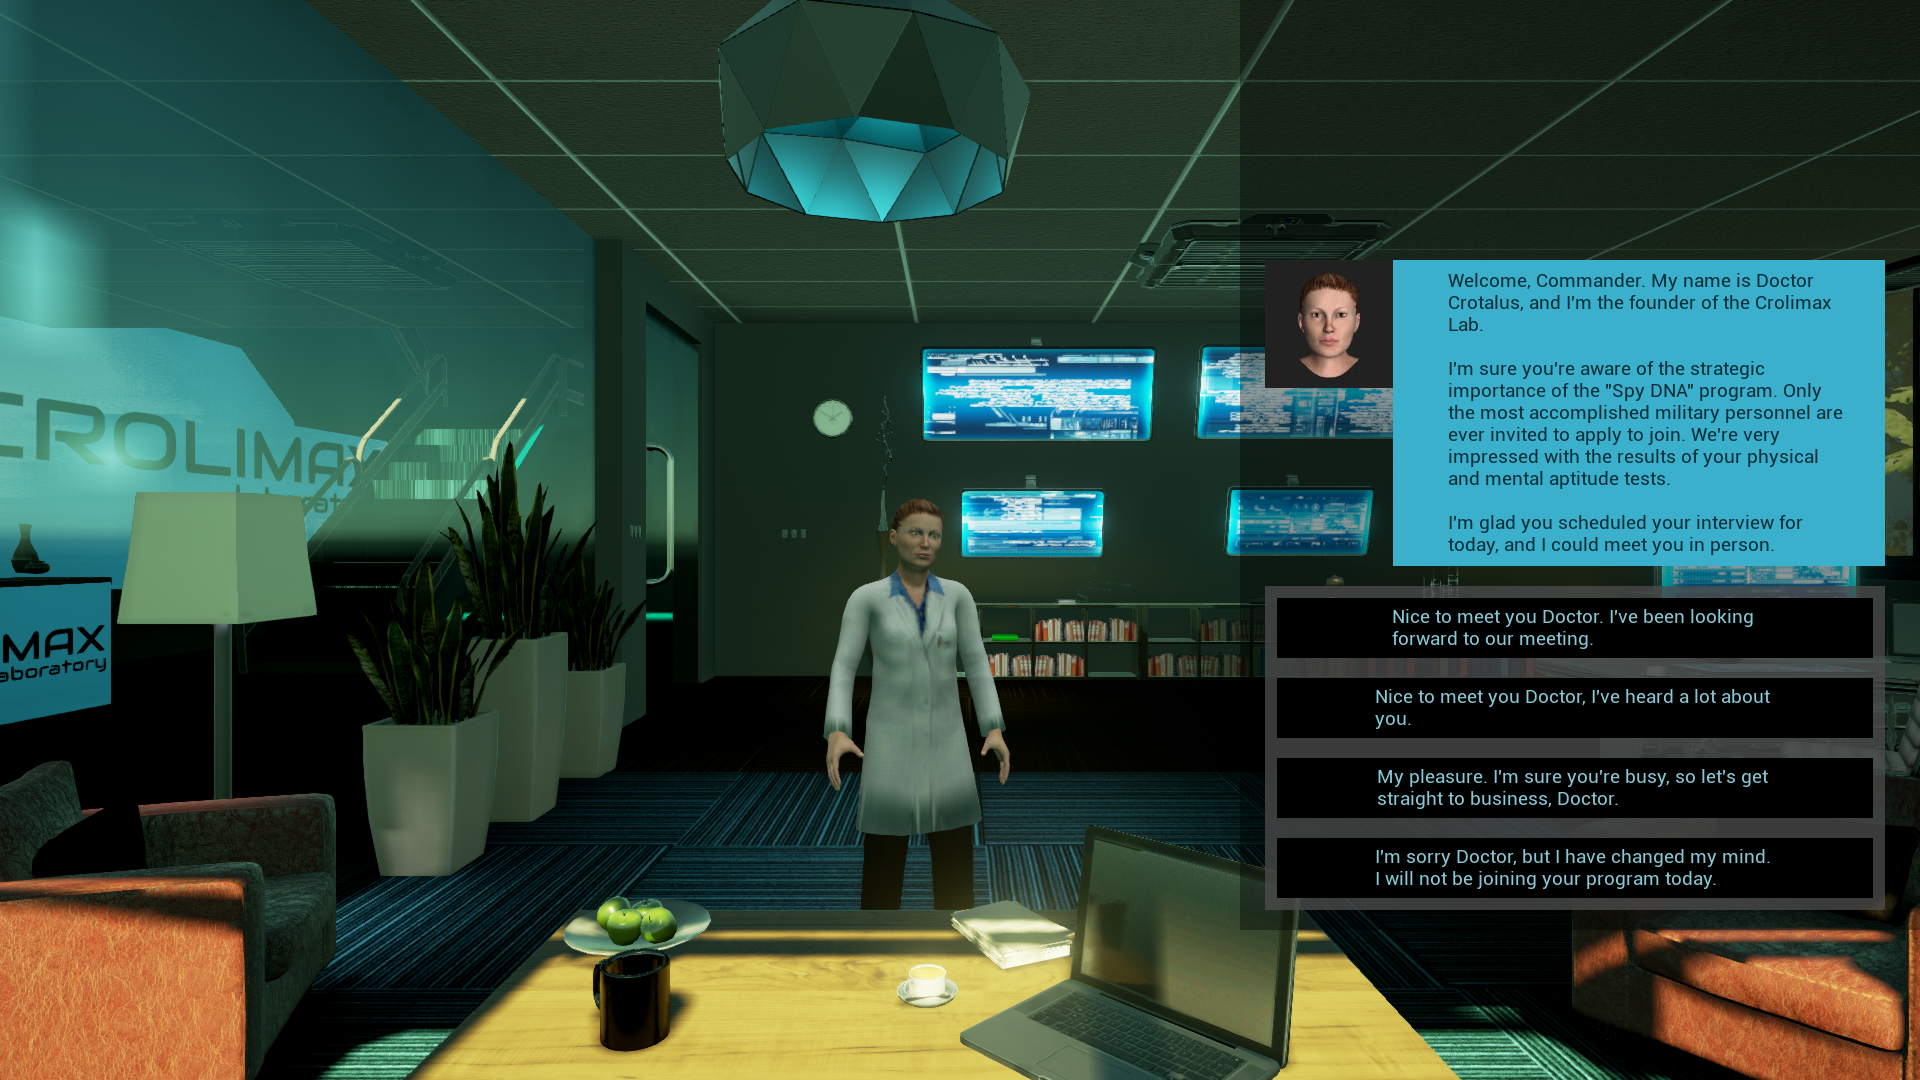 Character creation screenshot (work in progress): Talking to Dr. Britta Crotalus